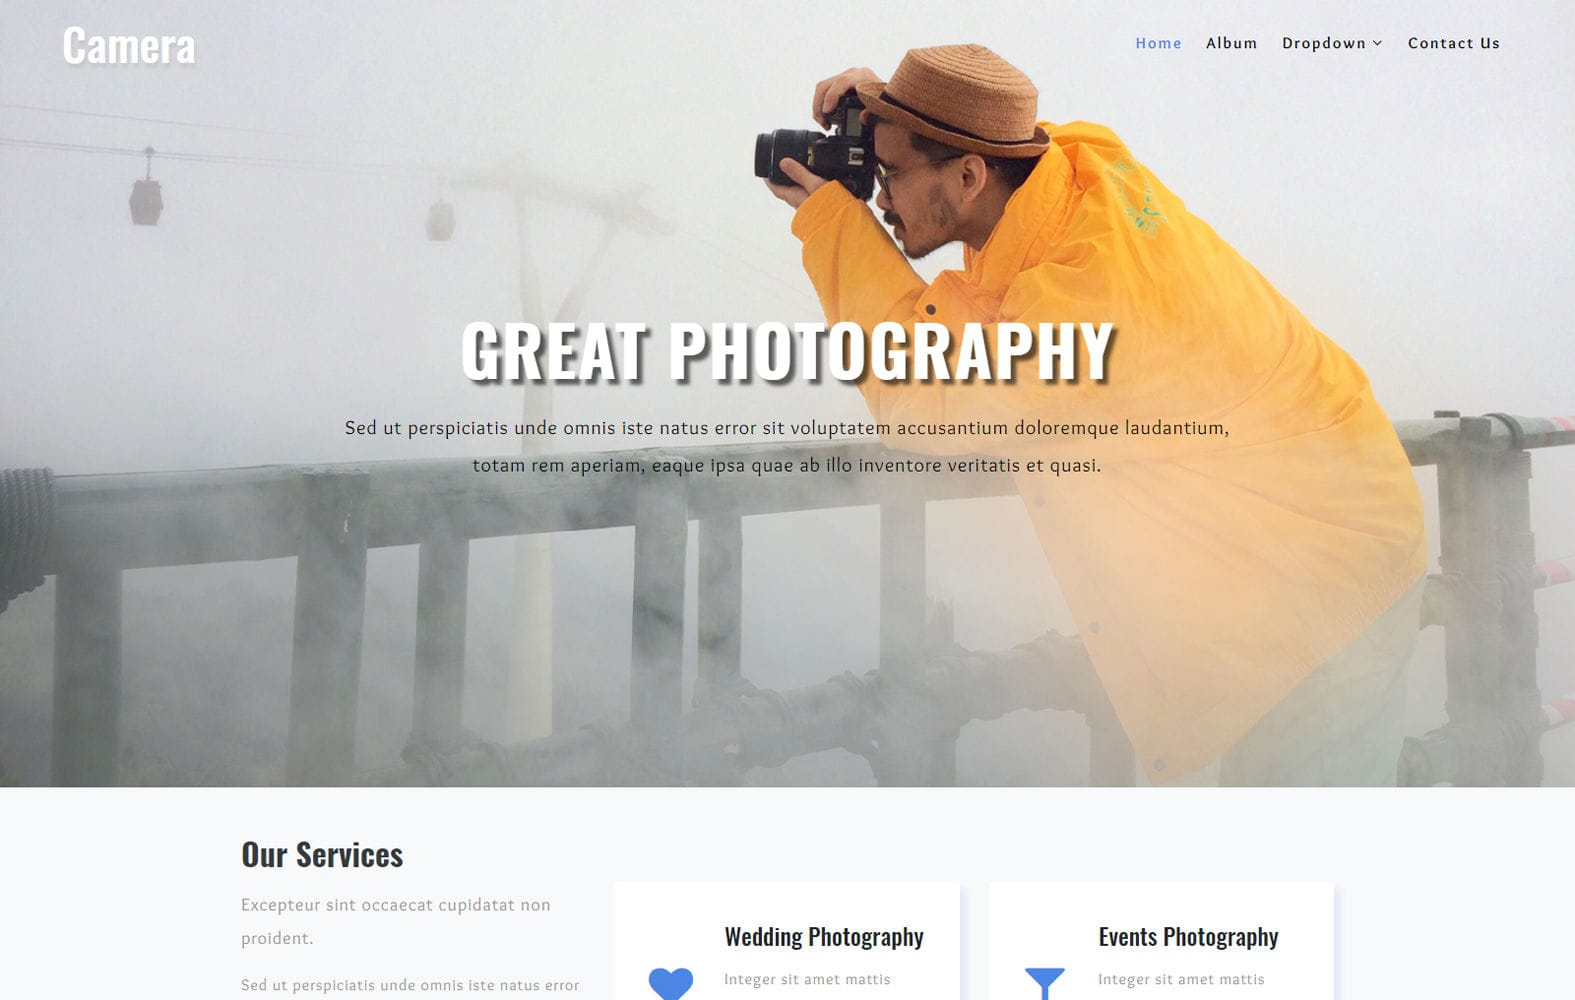 Camera a Photo Gallery Category Bootstrap Responsive Web Template